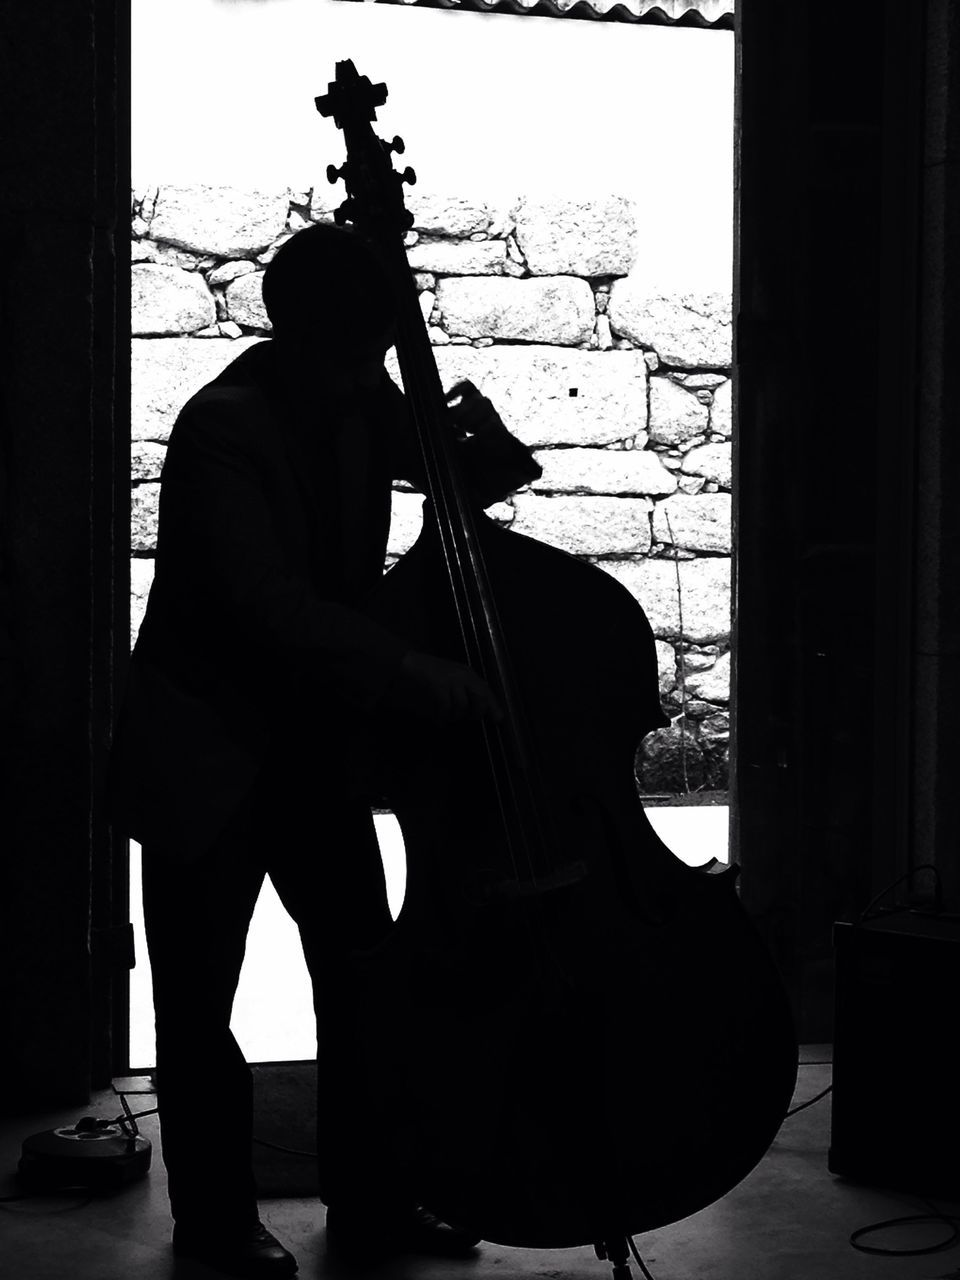 Silhouette Musician Playing Double Bass